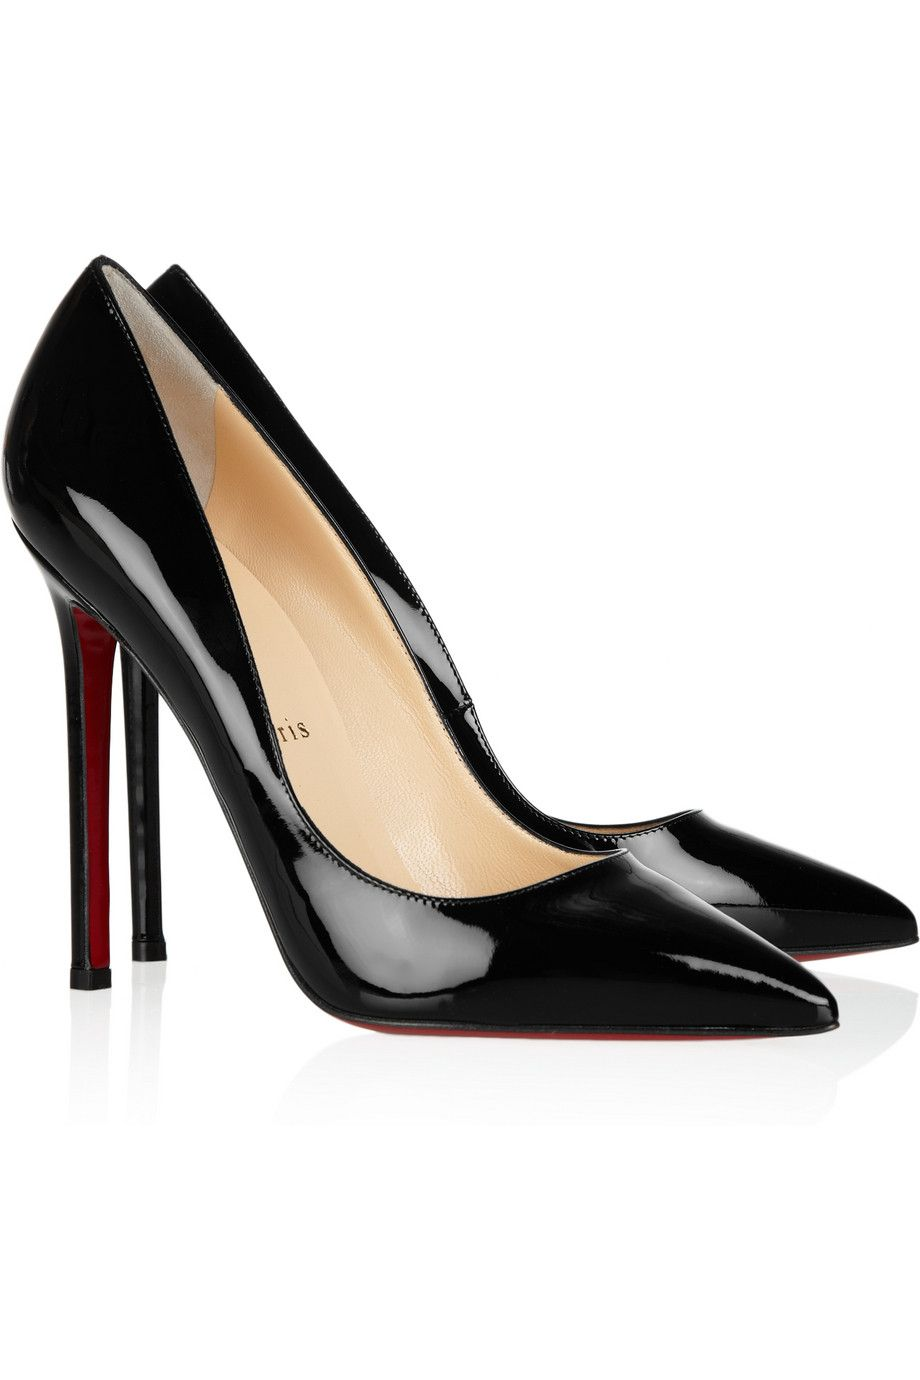 b4e86e399ab1 I heart these classic shoes...one day... Christian Louboutin Pigalle 120  patent leather pumps